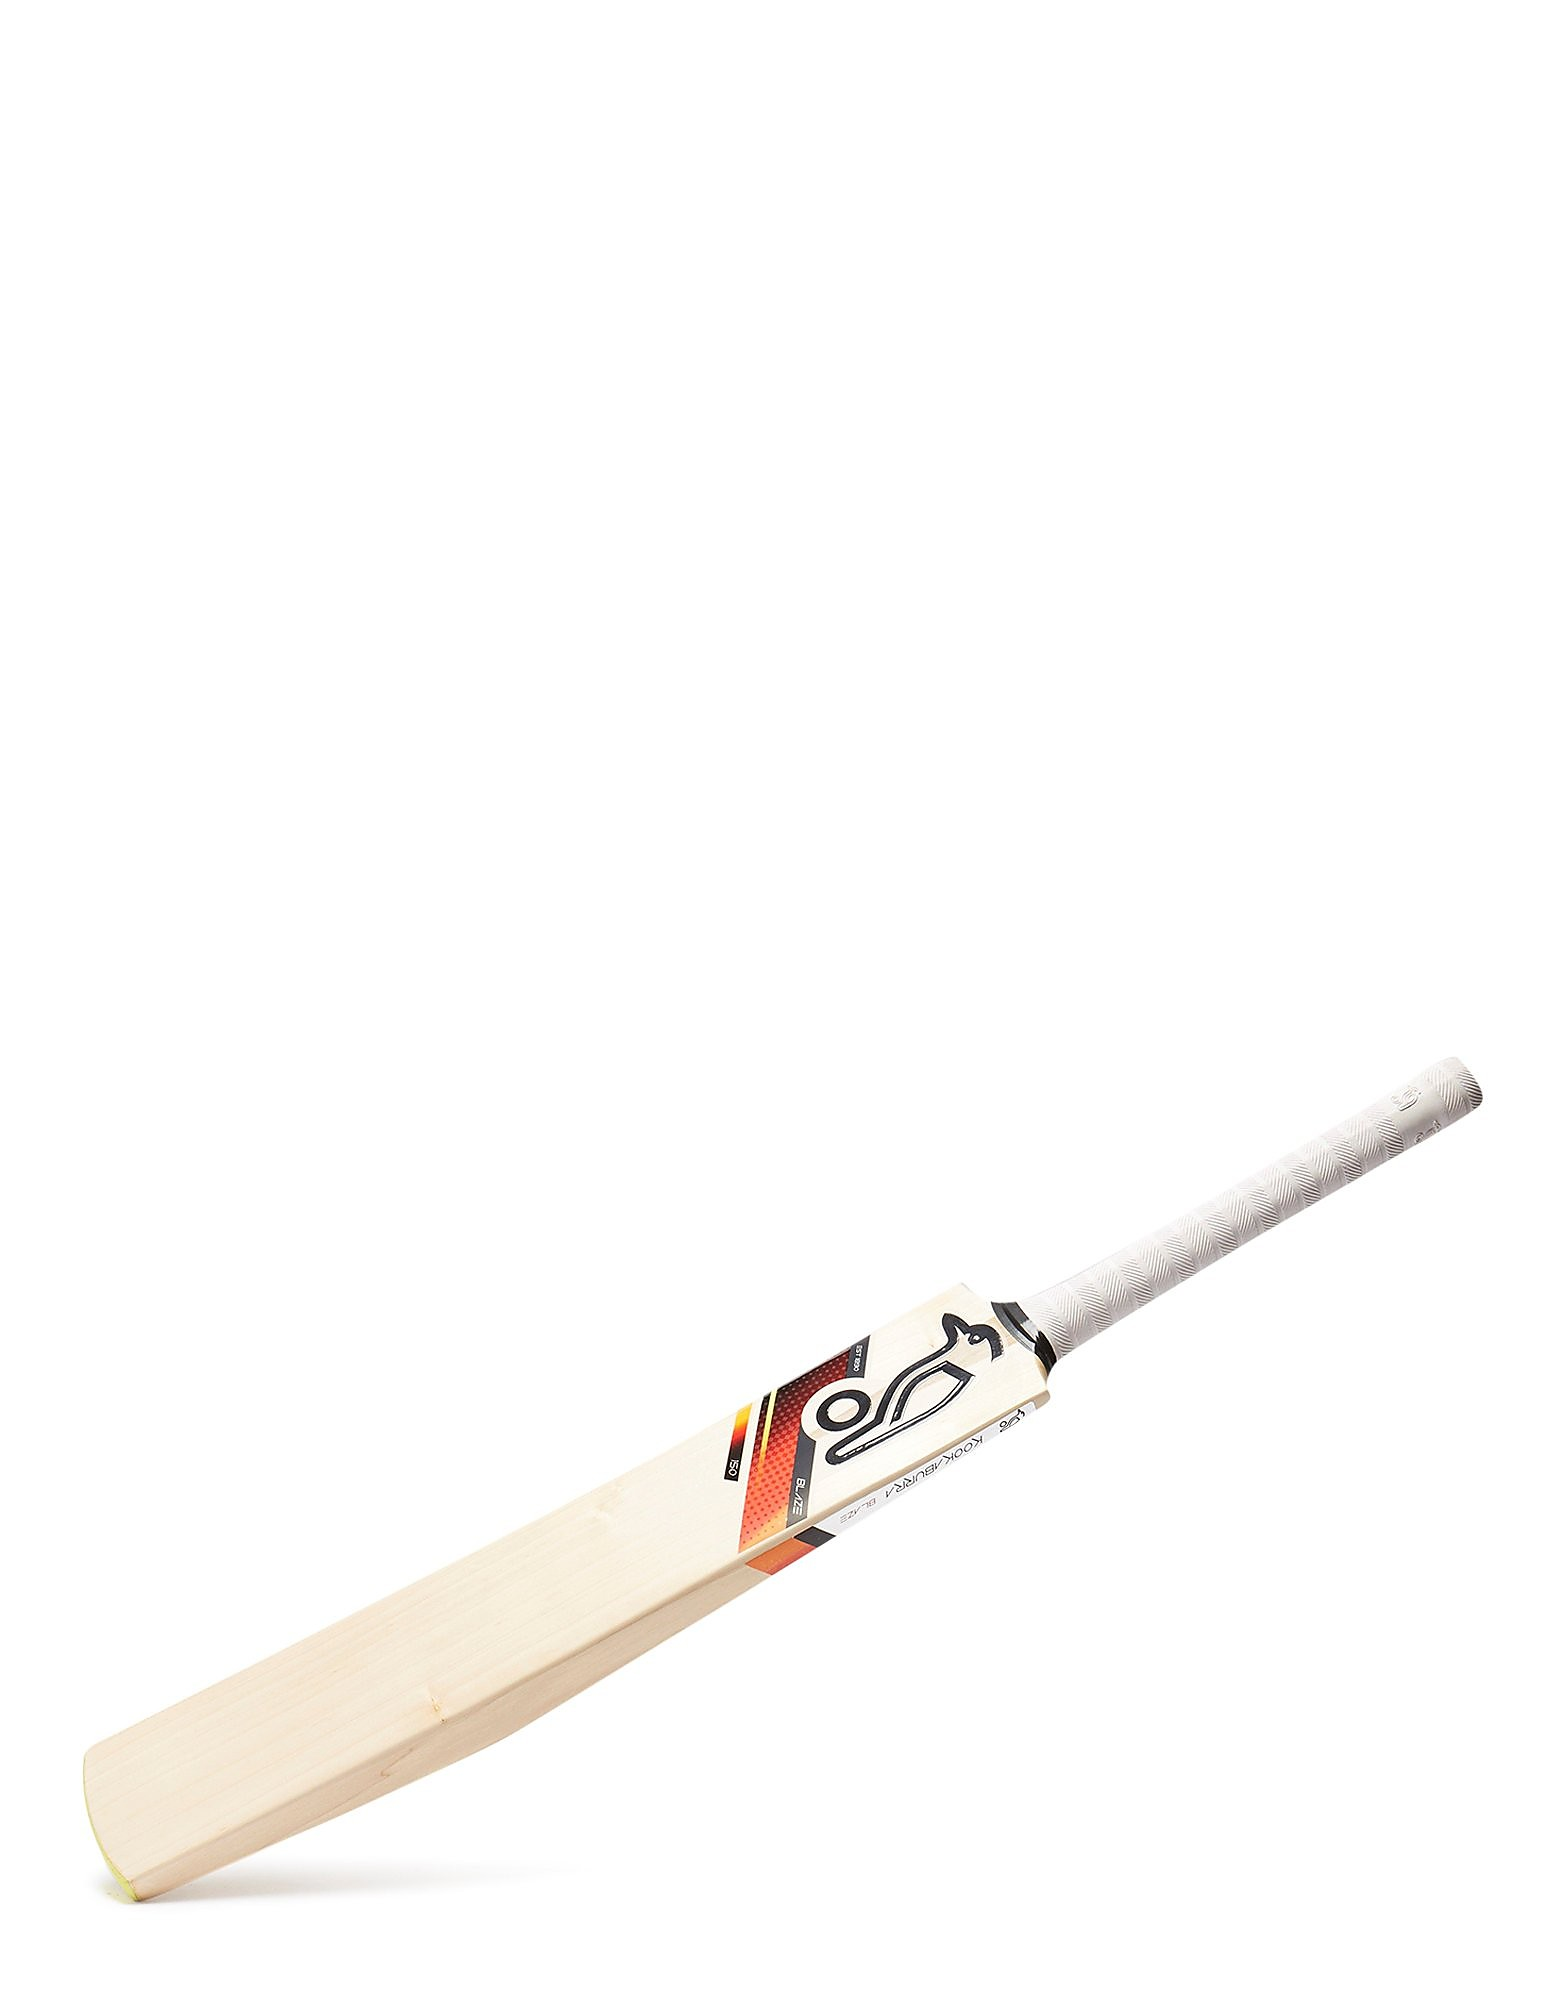 Kookaburra Blaze 150 Men's Cricket Bat